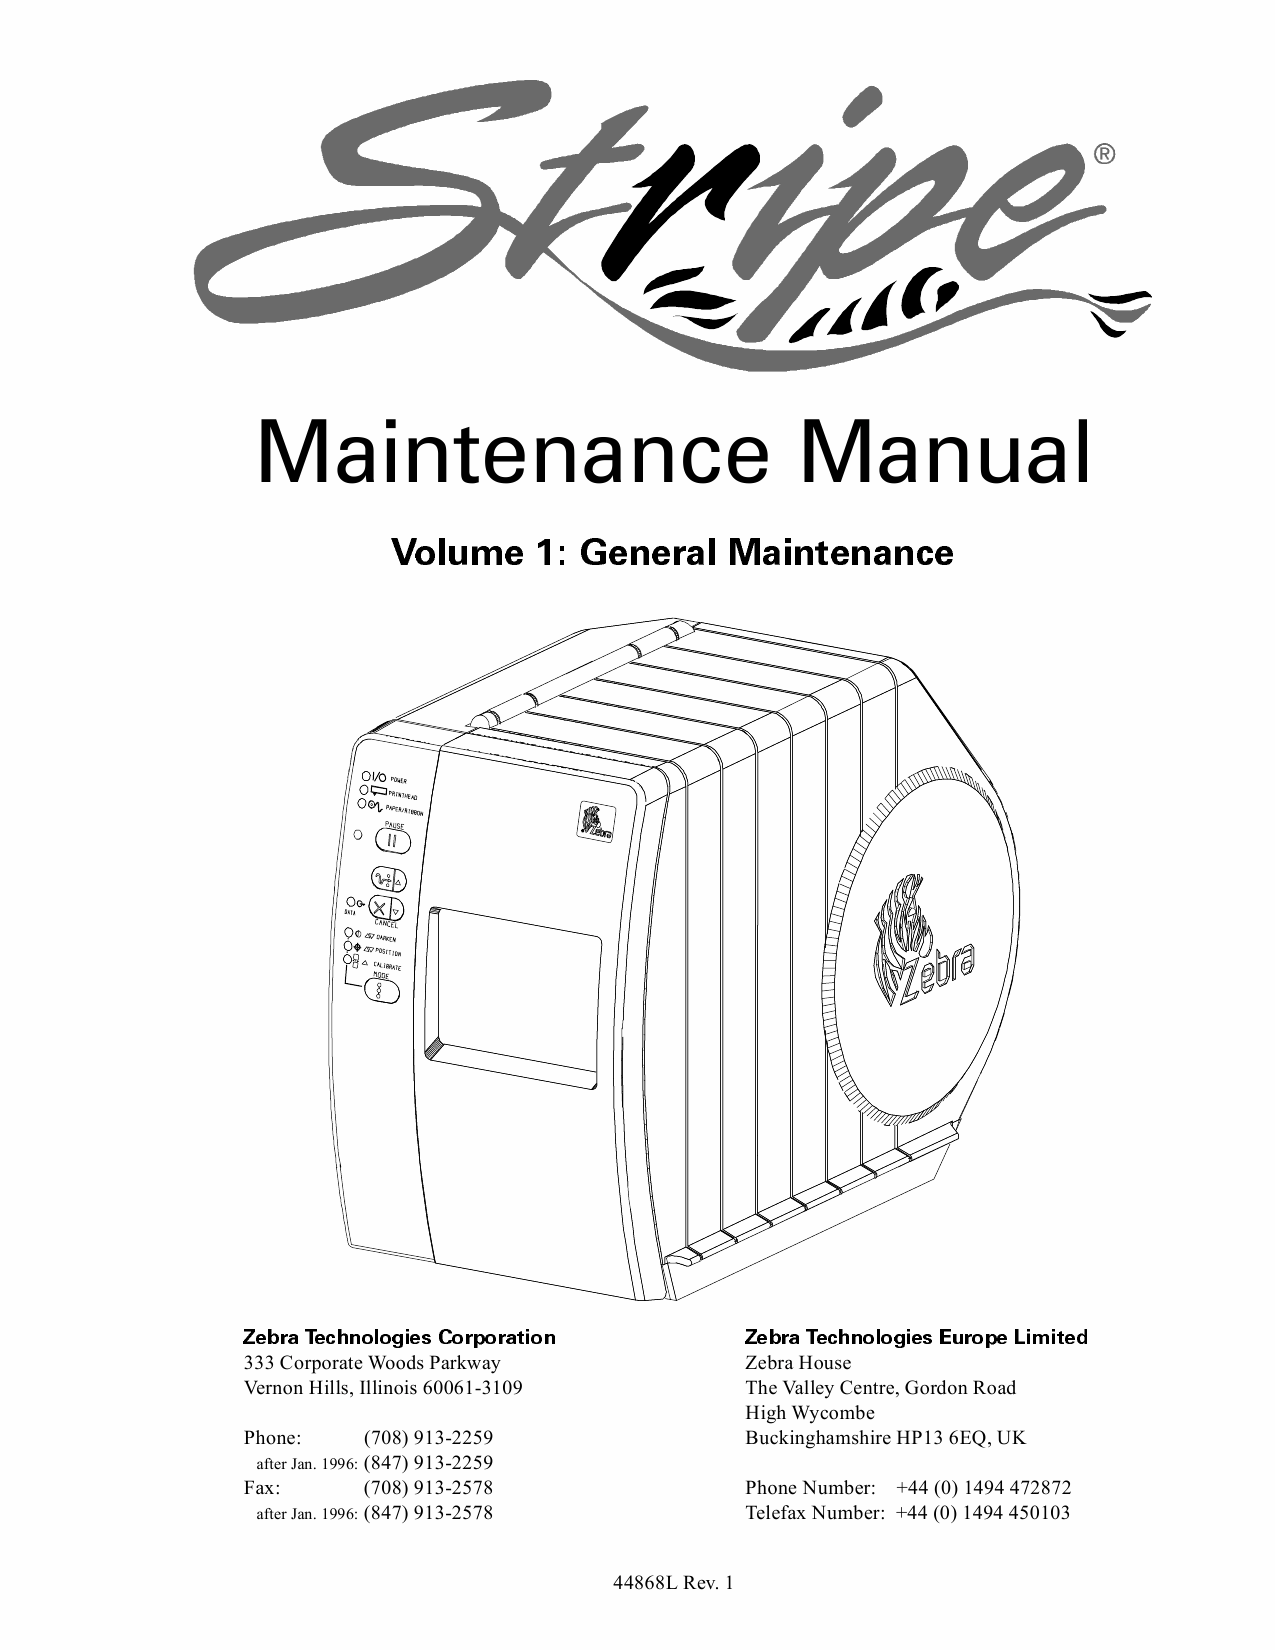 Zebra Label S300 S500 Maintenance Service Manual